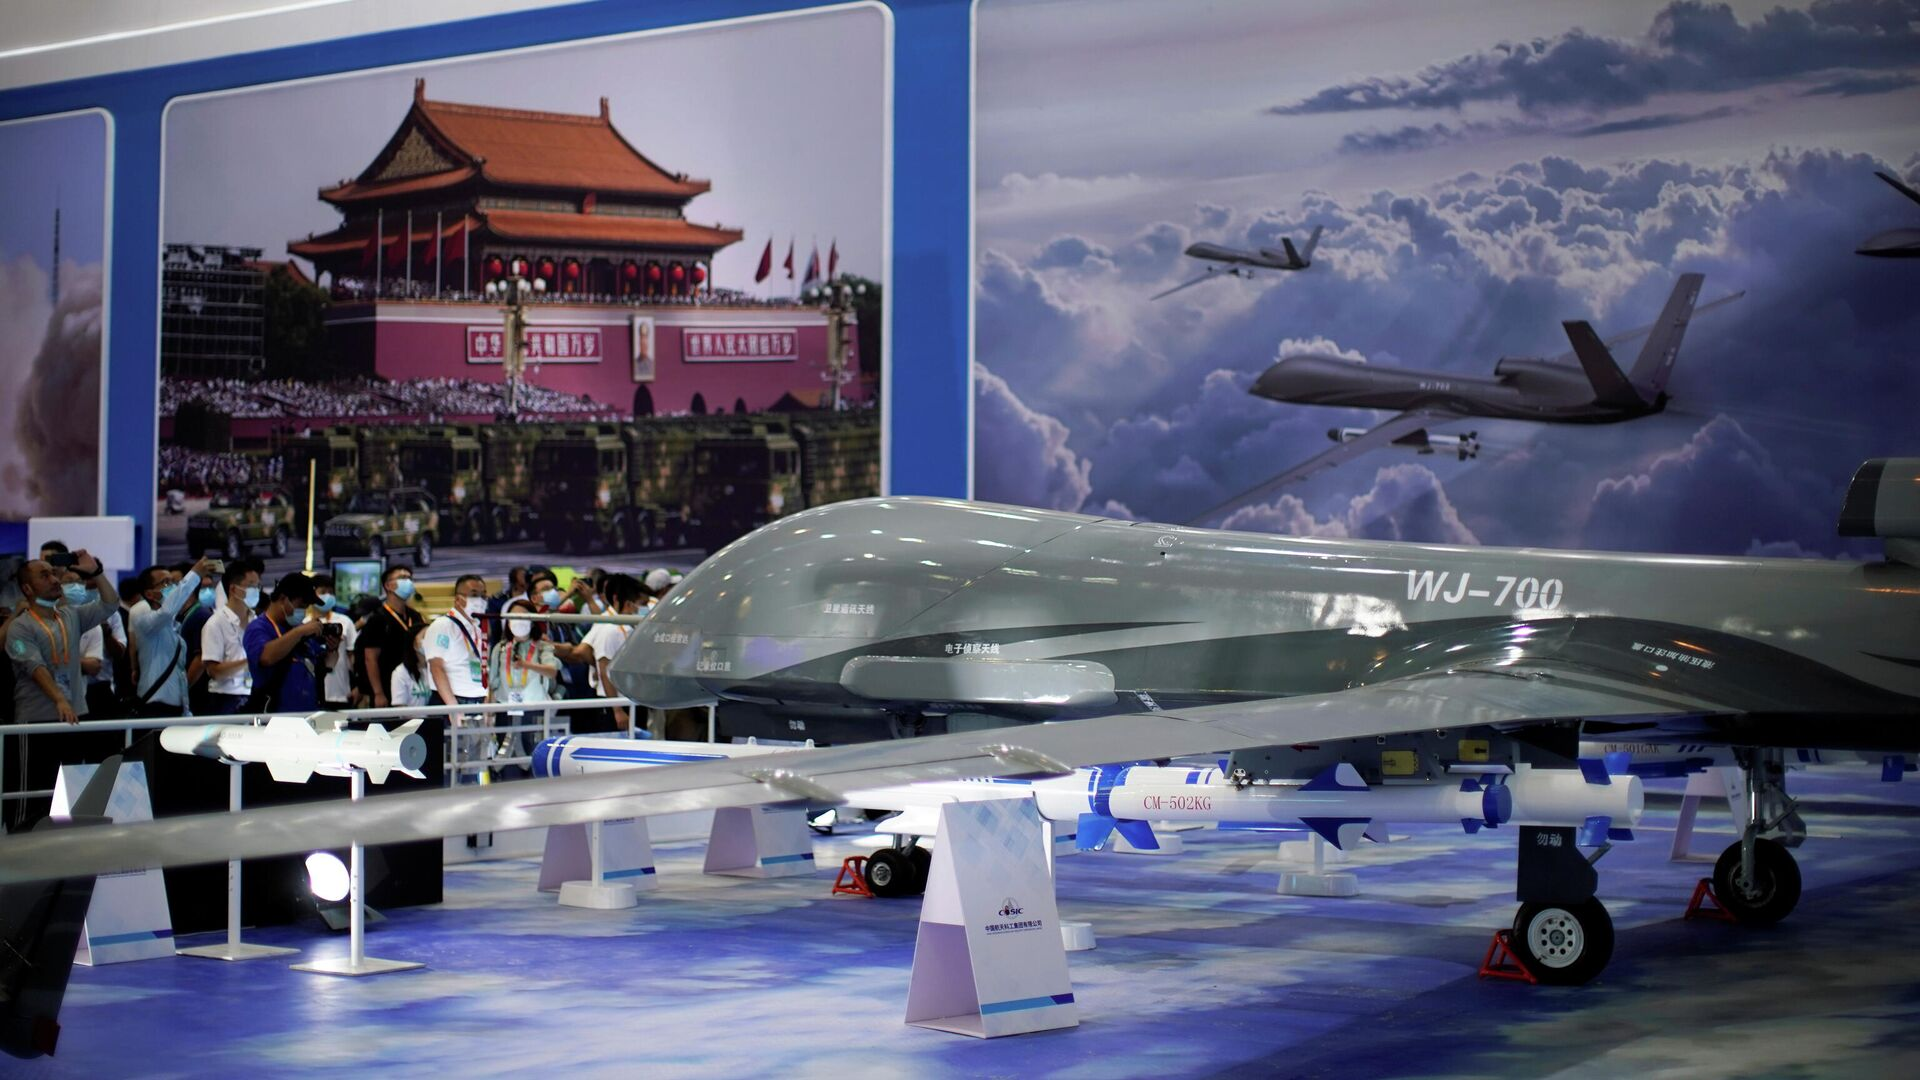 Visitors stand near a model of WJ-700 armed reconnaissance drone displayed at the China International Aviation and Aerospace Exhibition, or Airshow China, in Zhuhai, Guangdong province, China September 28, 2021 - Sputnik International, 1920, 14.10.2021